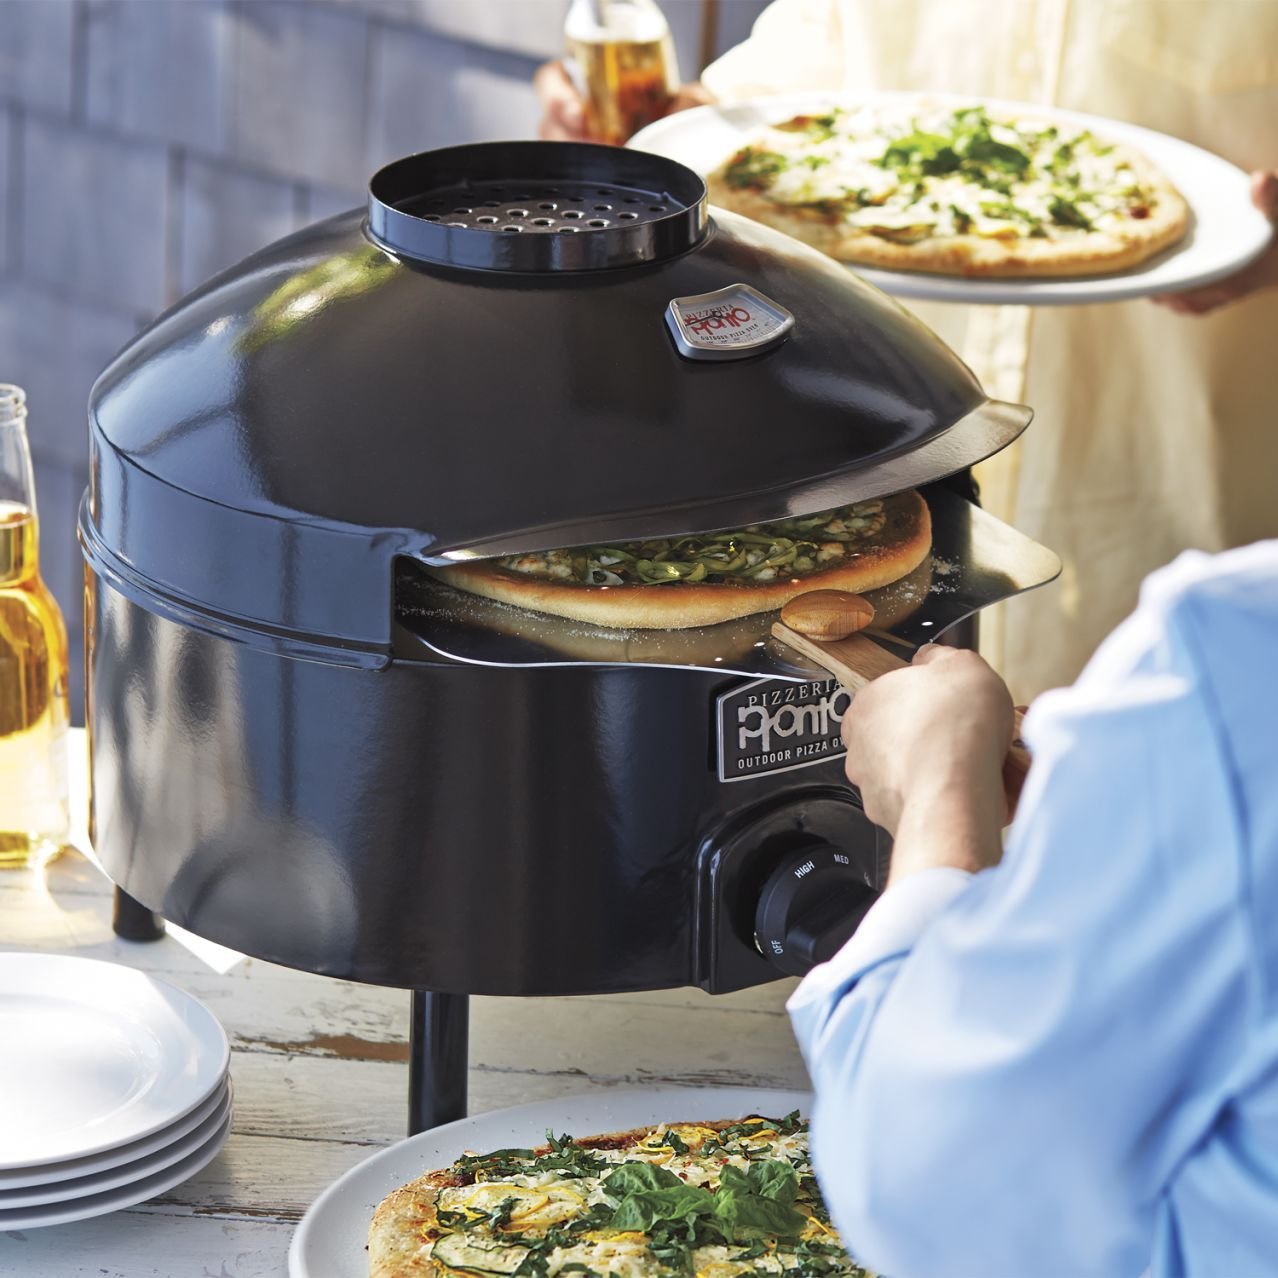 9a9b9983dbba38bef23fd9e068519fae - Better Homes And Gardens Pizza Oven Video